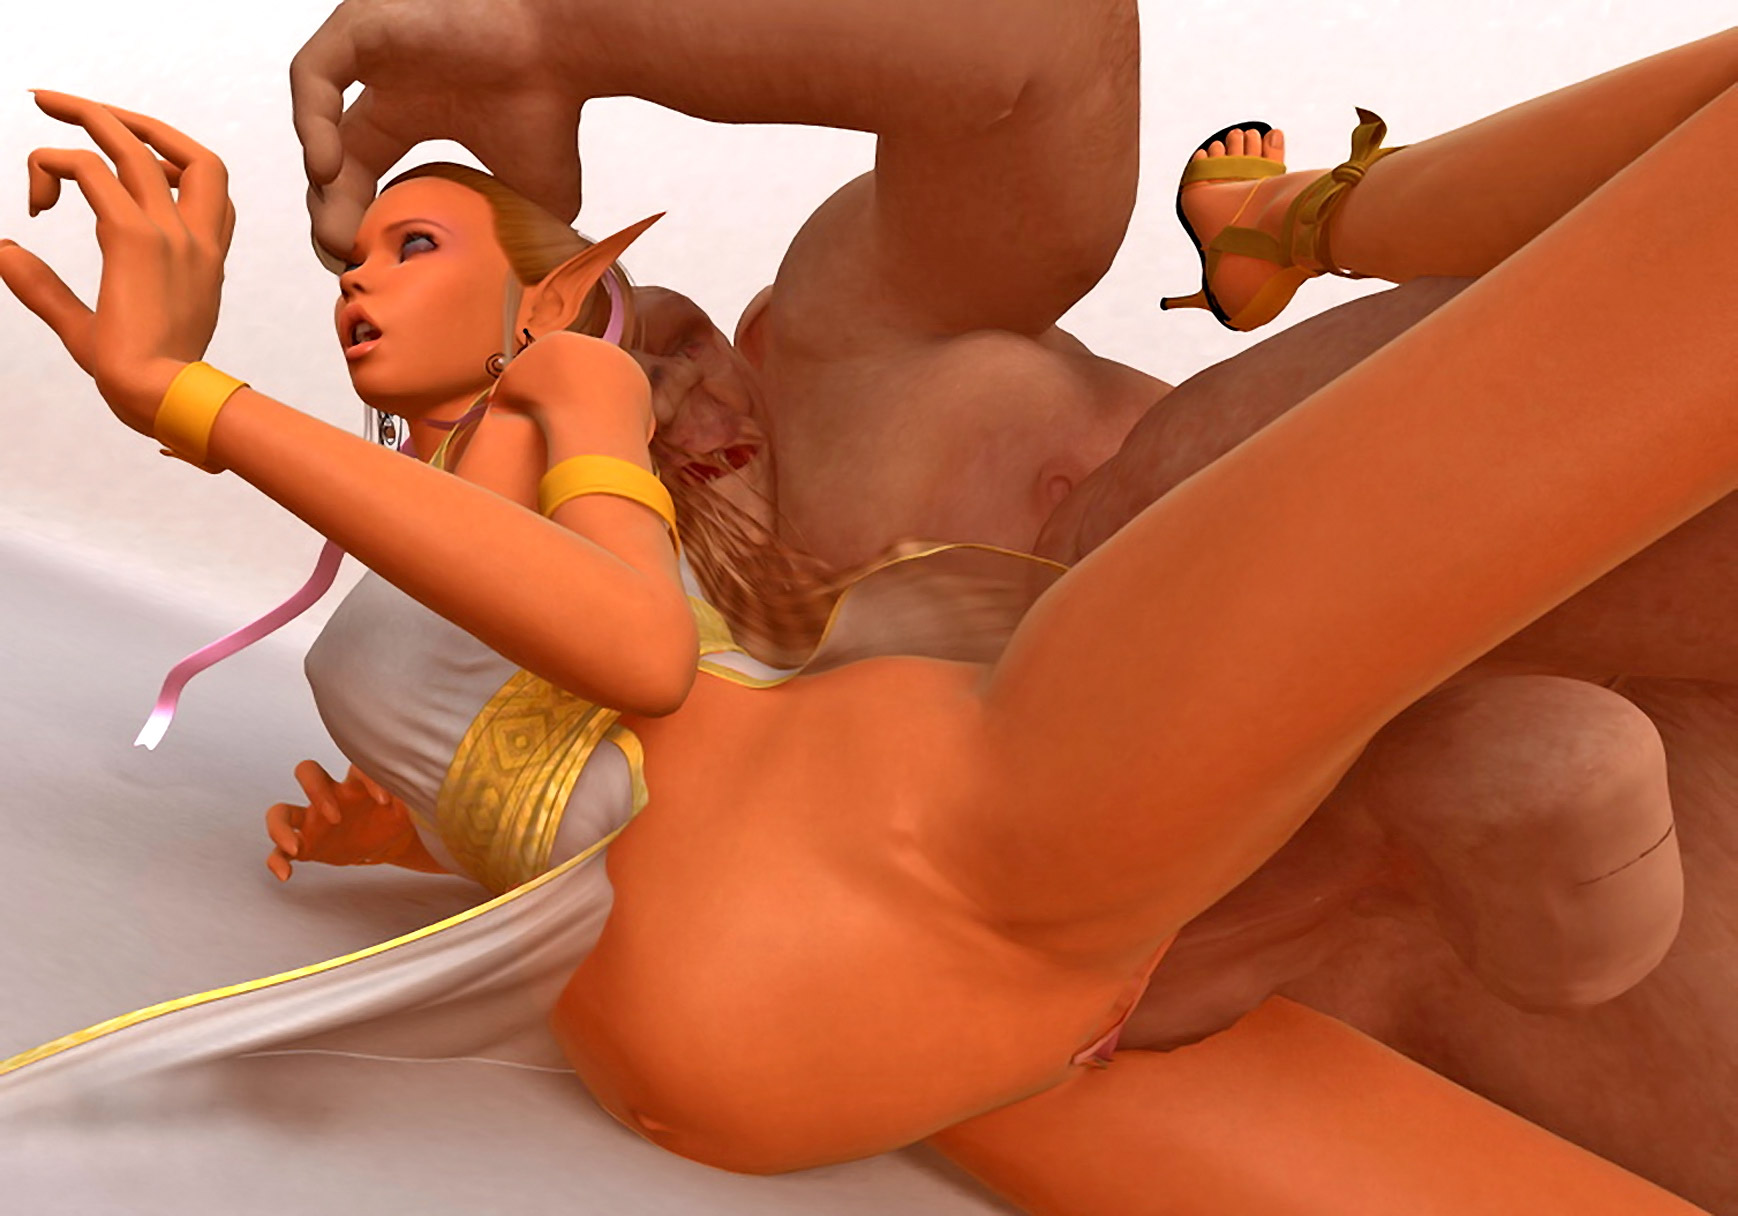 3d elf princess fucked by monster hentai cartoon tube